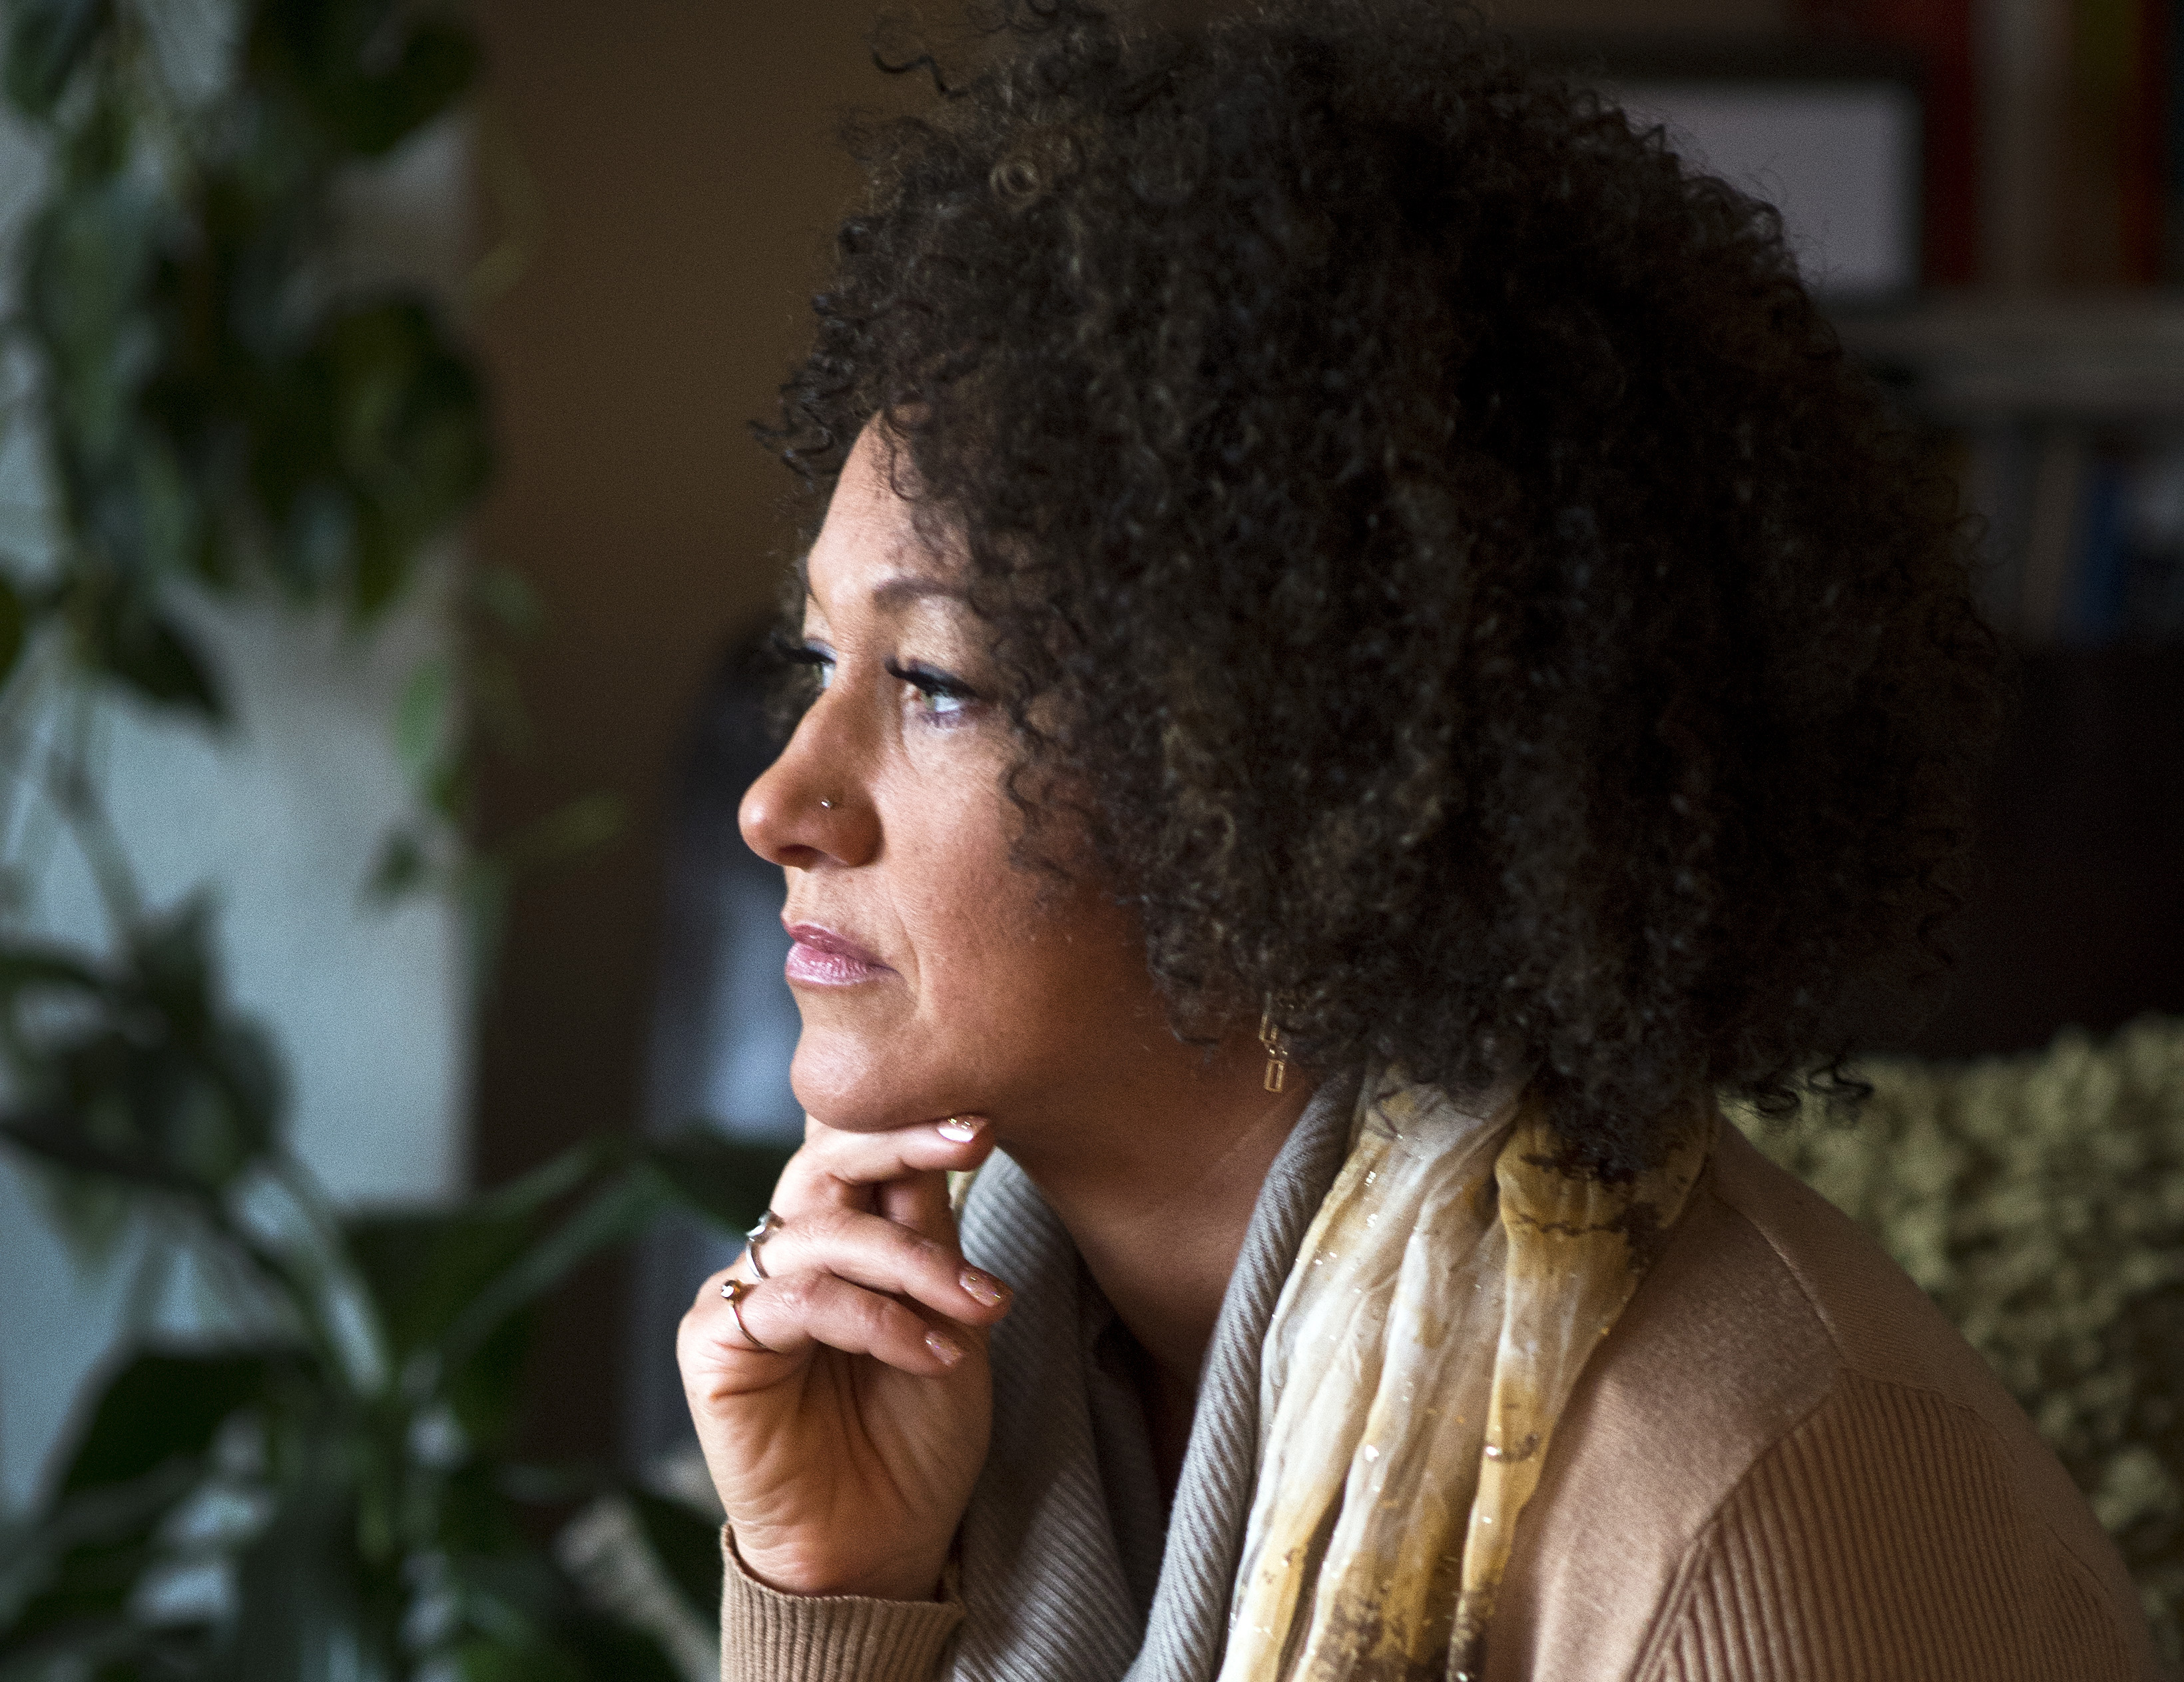 Rachel Dolezal, president of the Spokane chapter of the NAACP, poses for a photo in her Spokane, Wash., home on March 2, 2015.